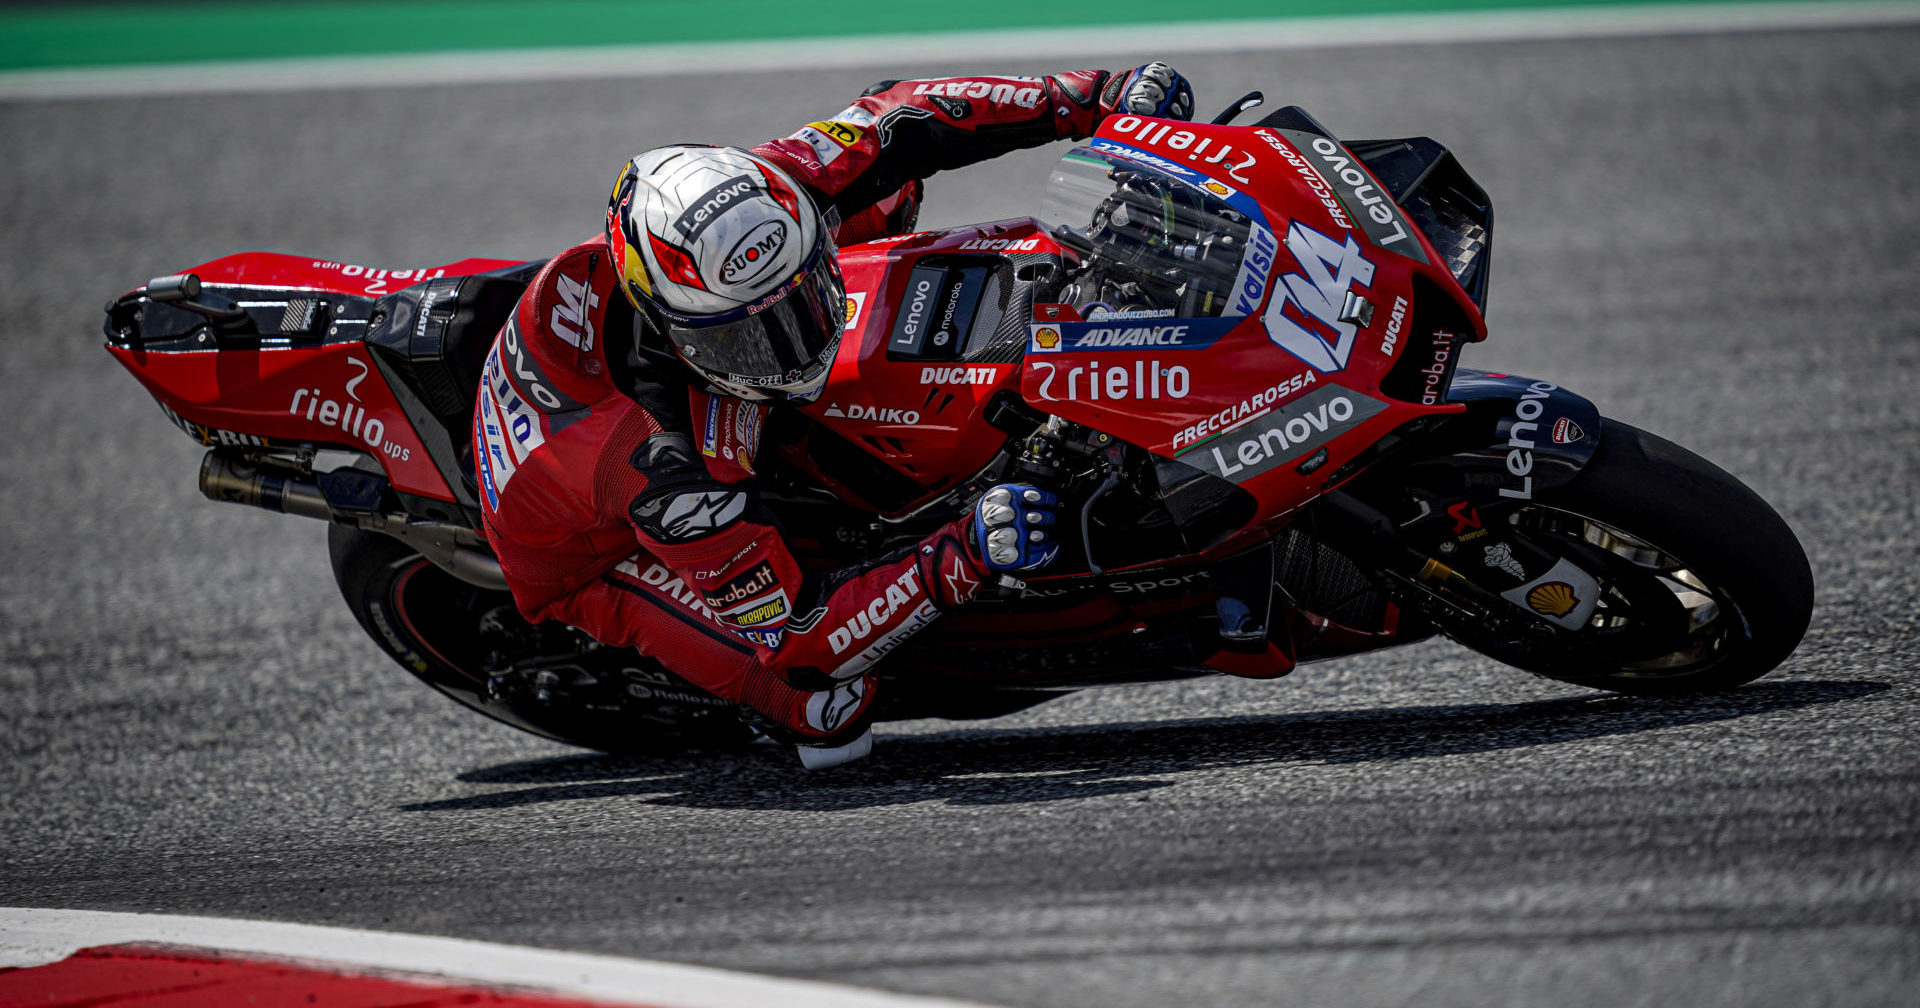 Andrea Dovizioso (04) on his way to victory, and Ducati's 50th MotoGP race win, at the Red Bull Ring. Photo courtesy Ducati.